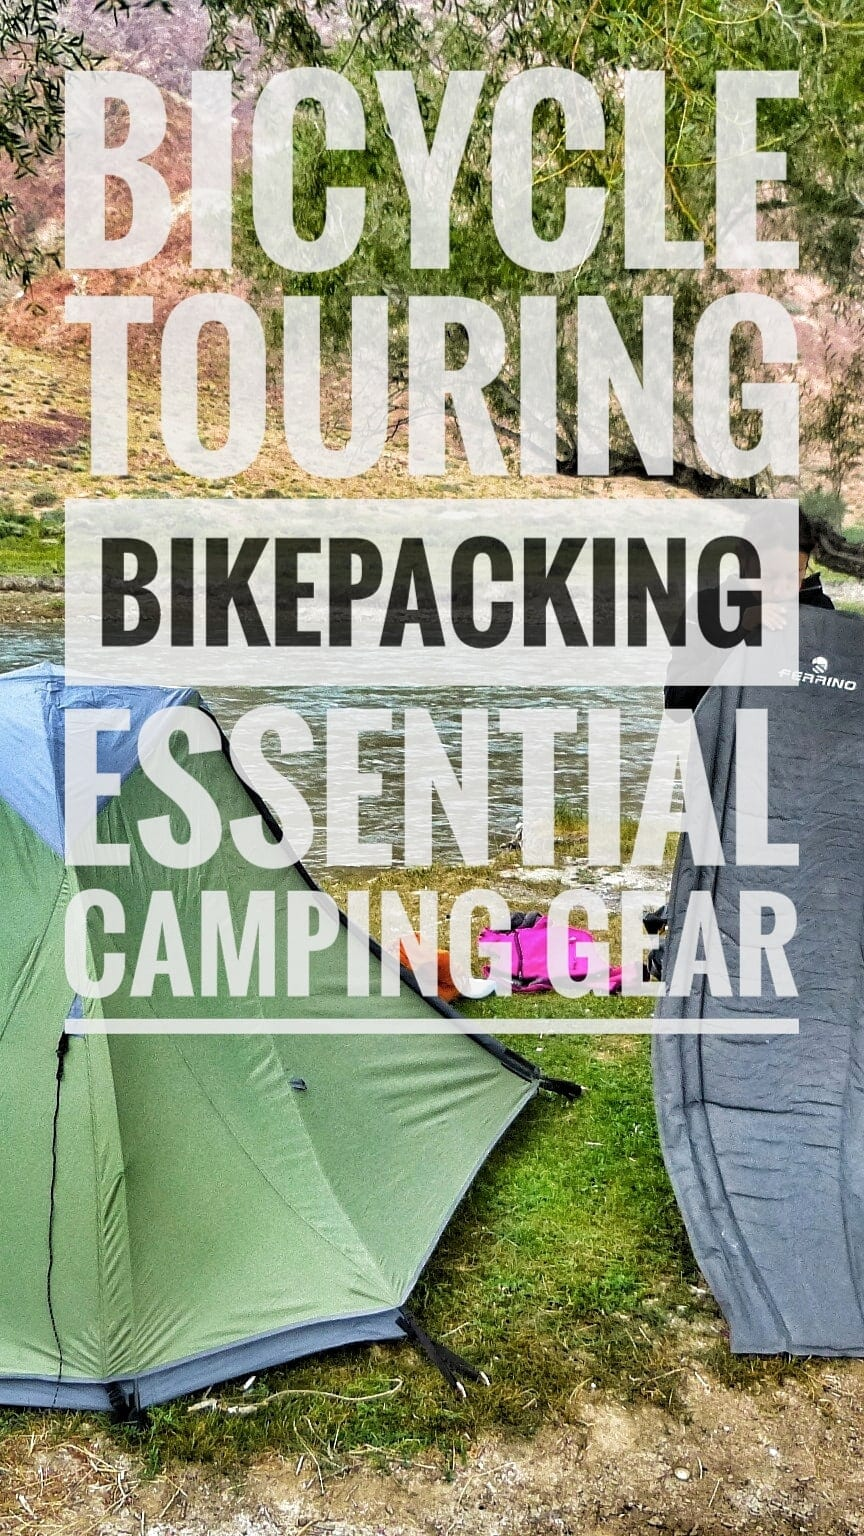 Essential Camping Gear Bicycle Touring Bikepacking